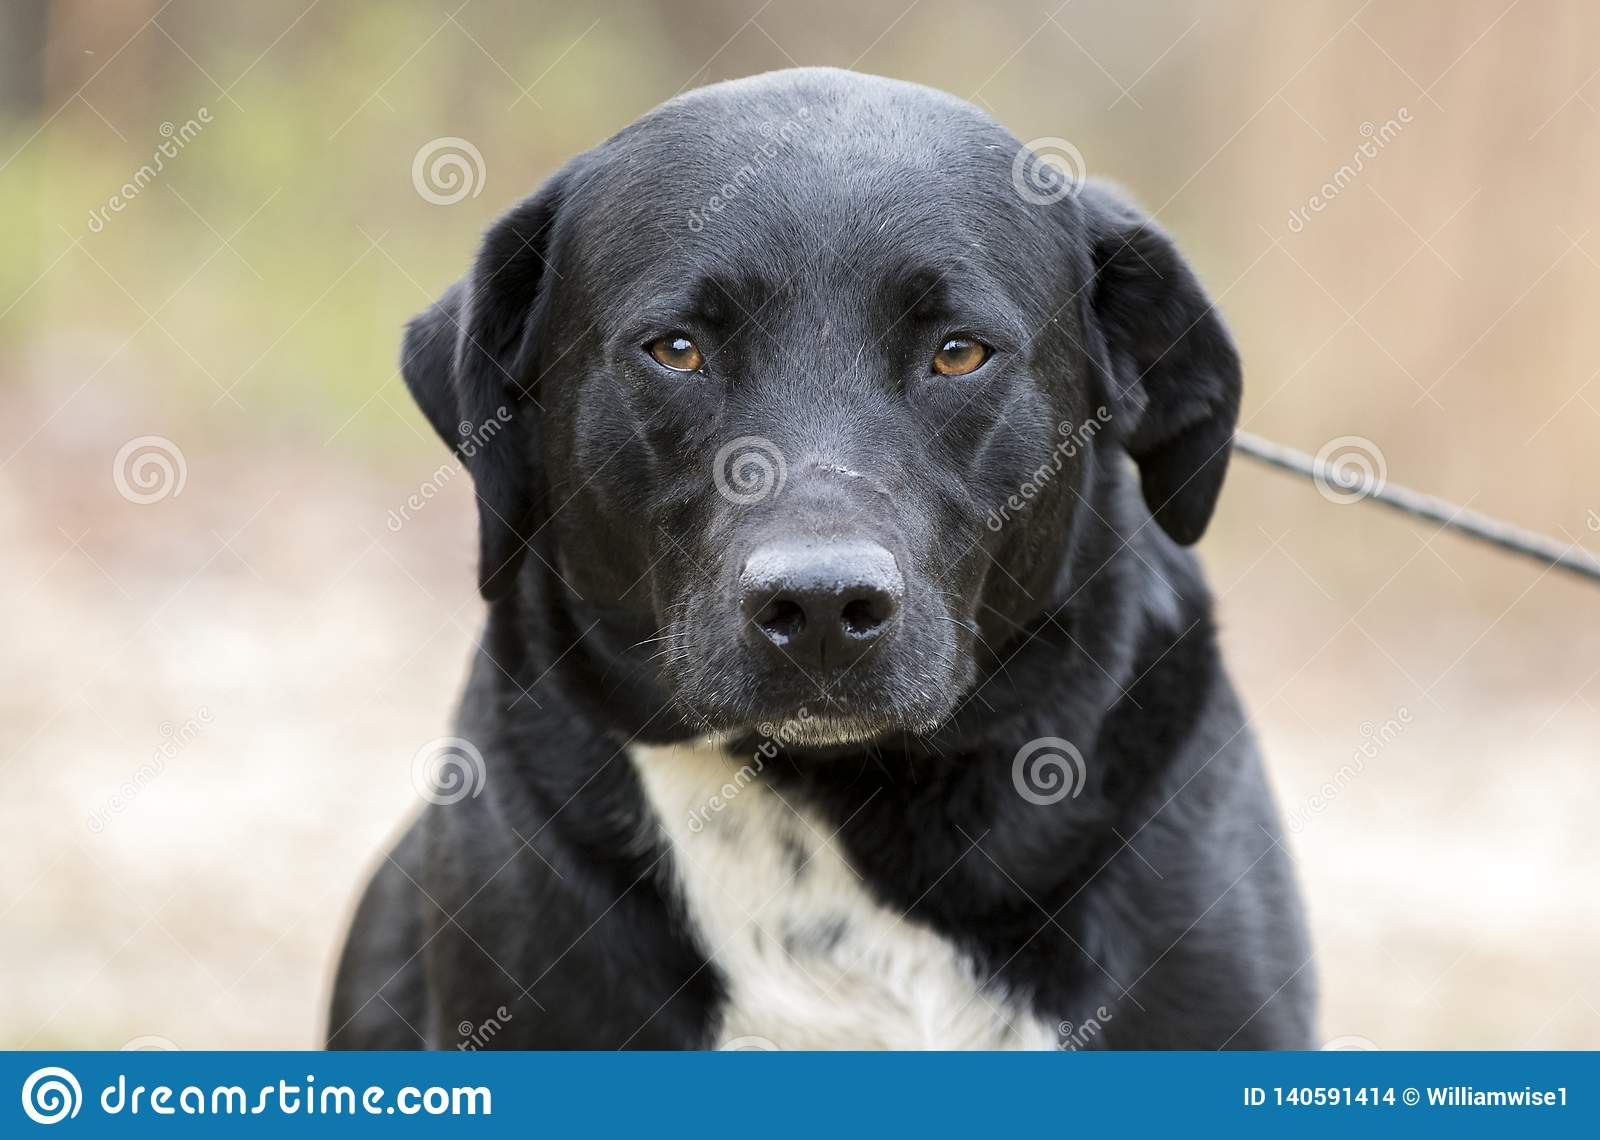 Border Collie Labrador Retriever Mixed Breed Dog Stock Photo